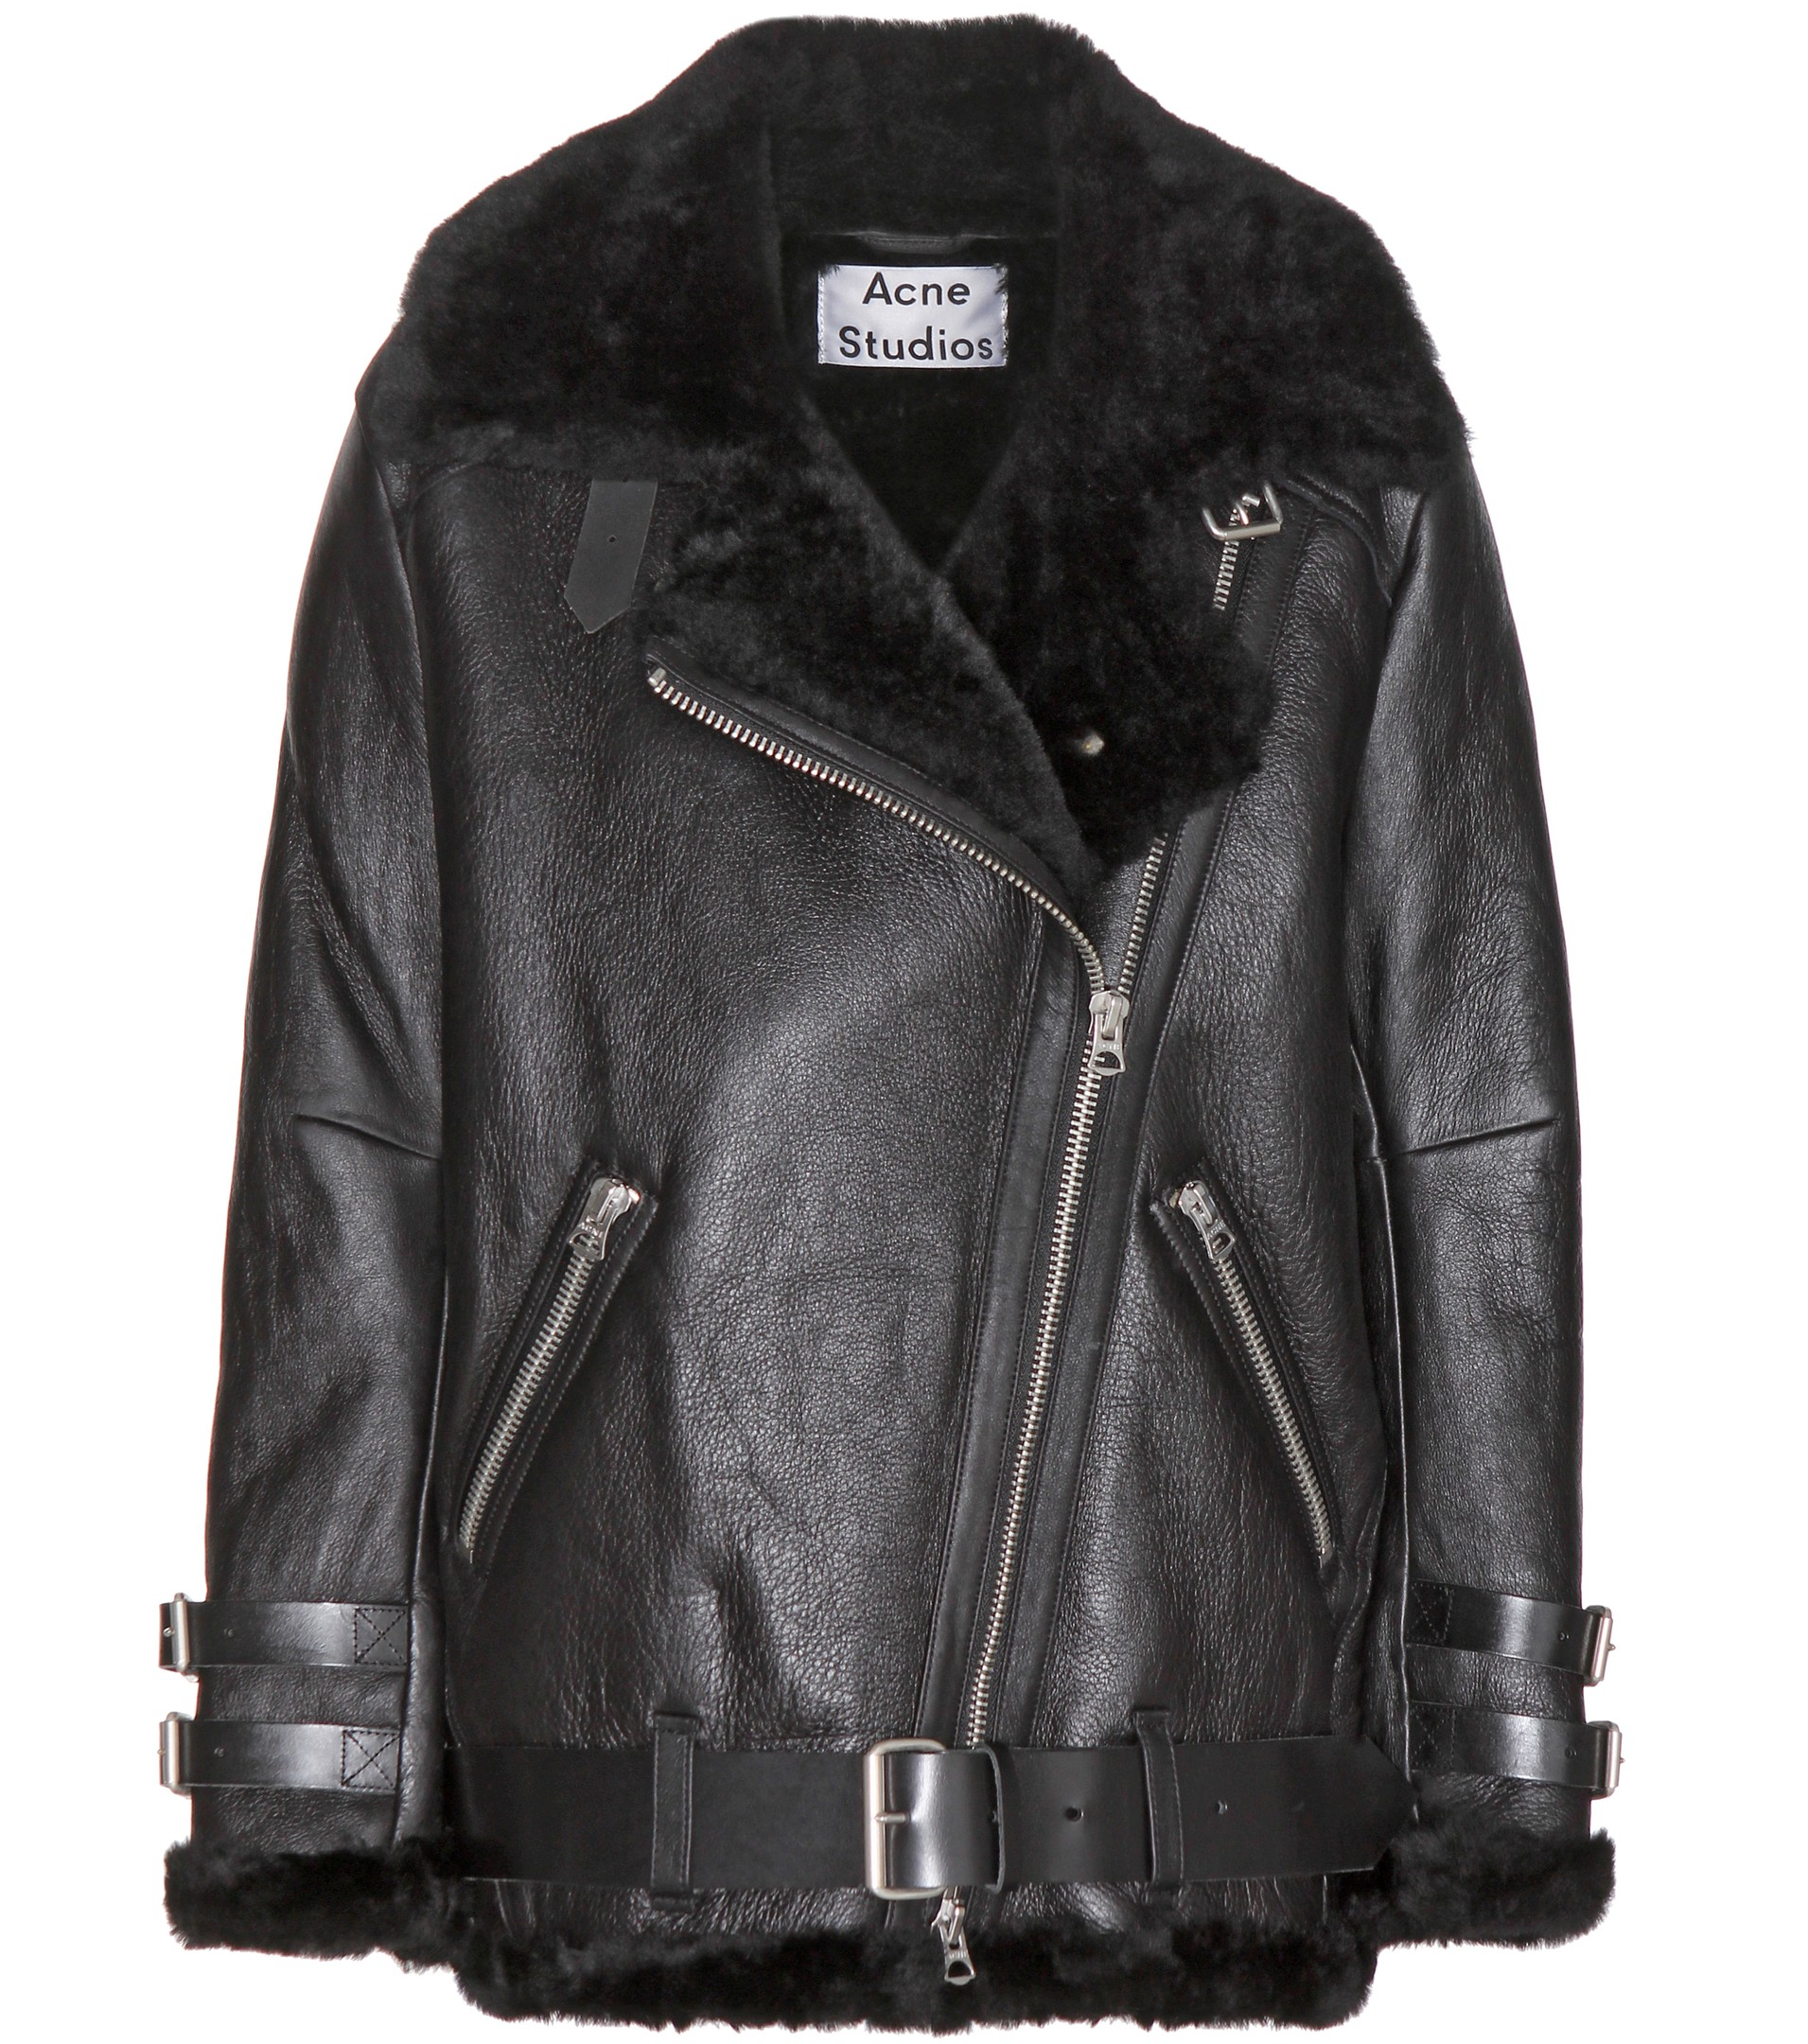 Acne Velocite Shearling-Lined Leather Jacket